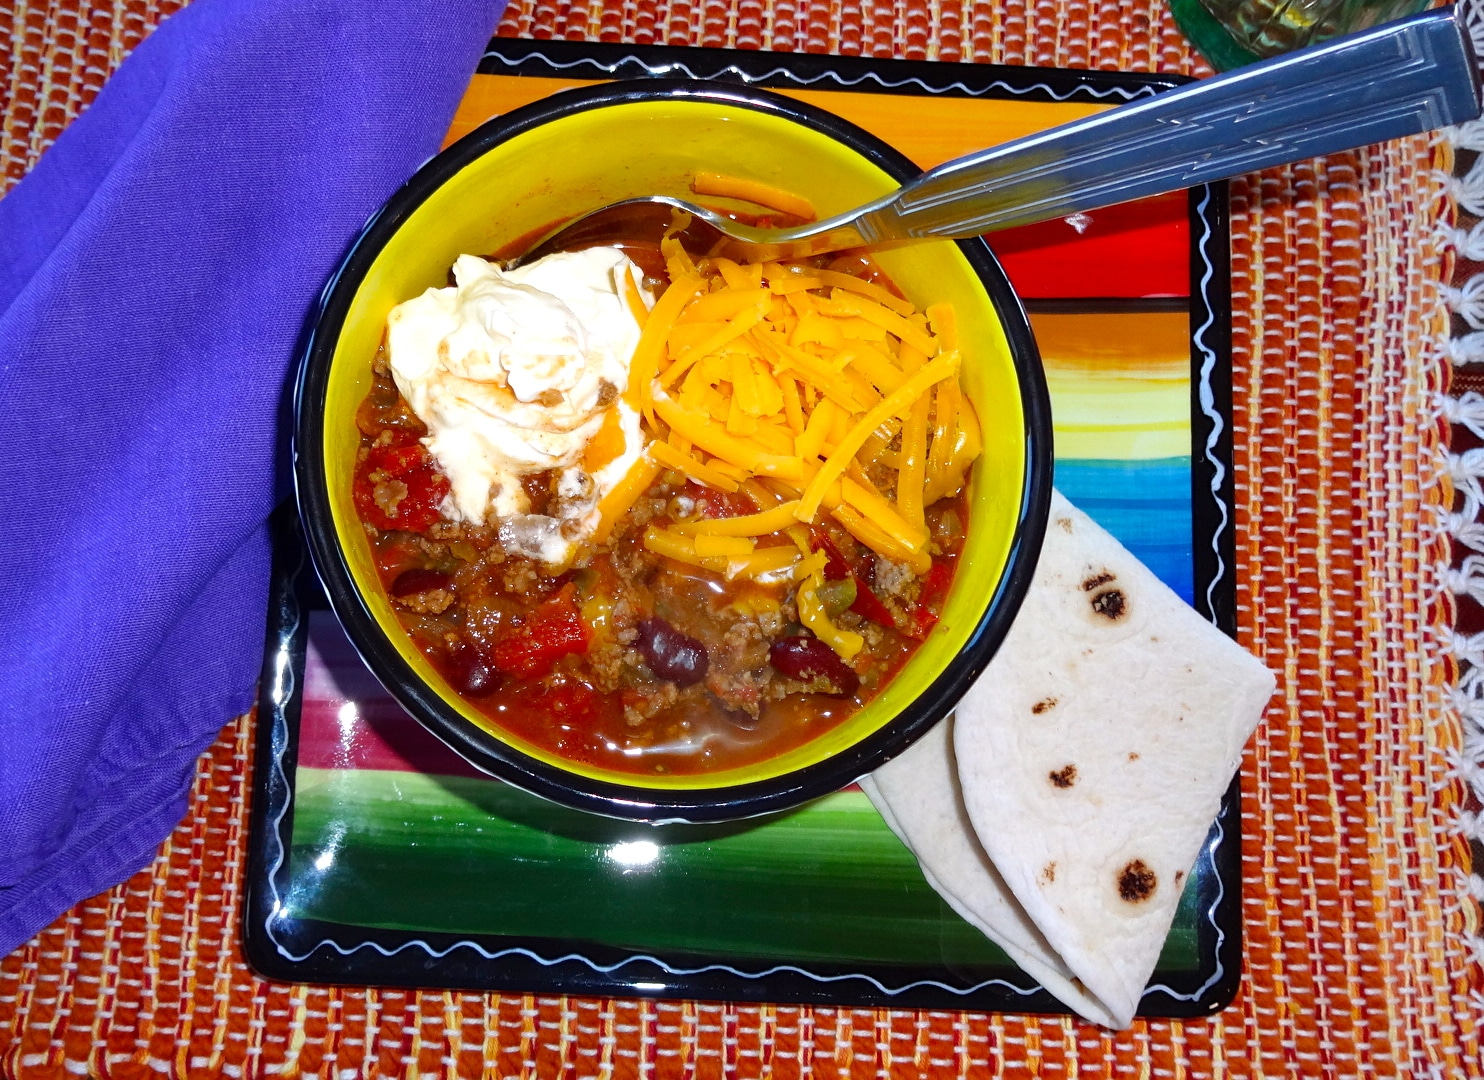 Beef and Stout Beer Chili - The Wandering Gourmand